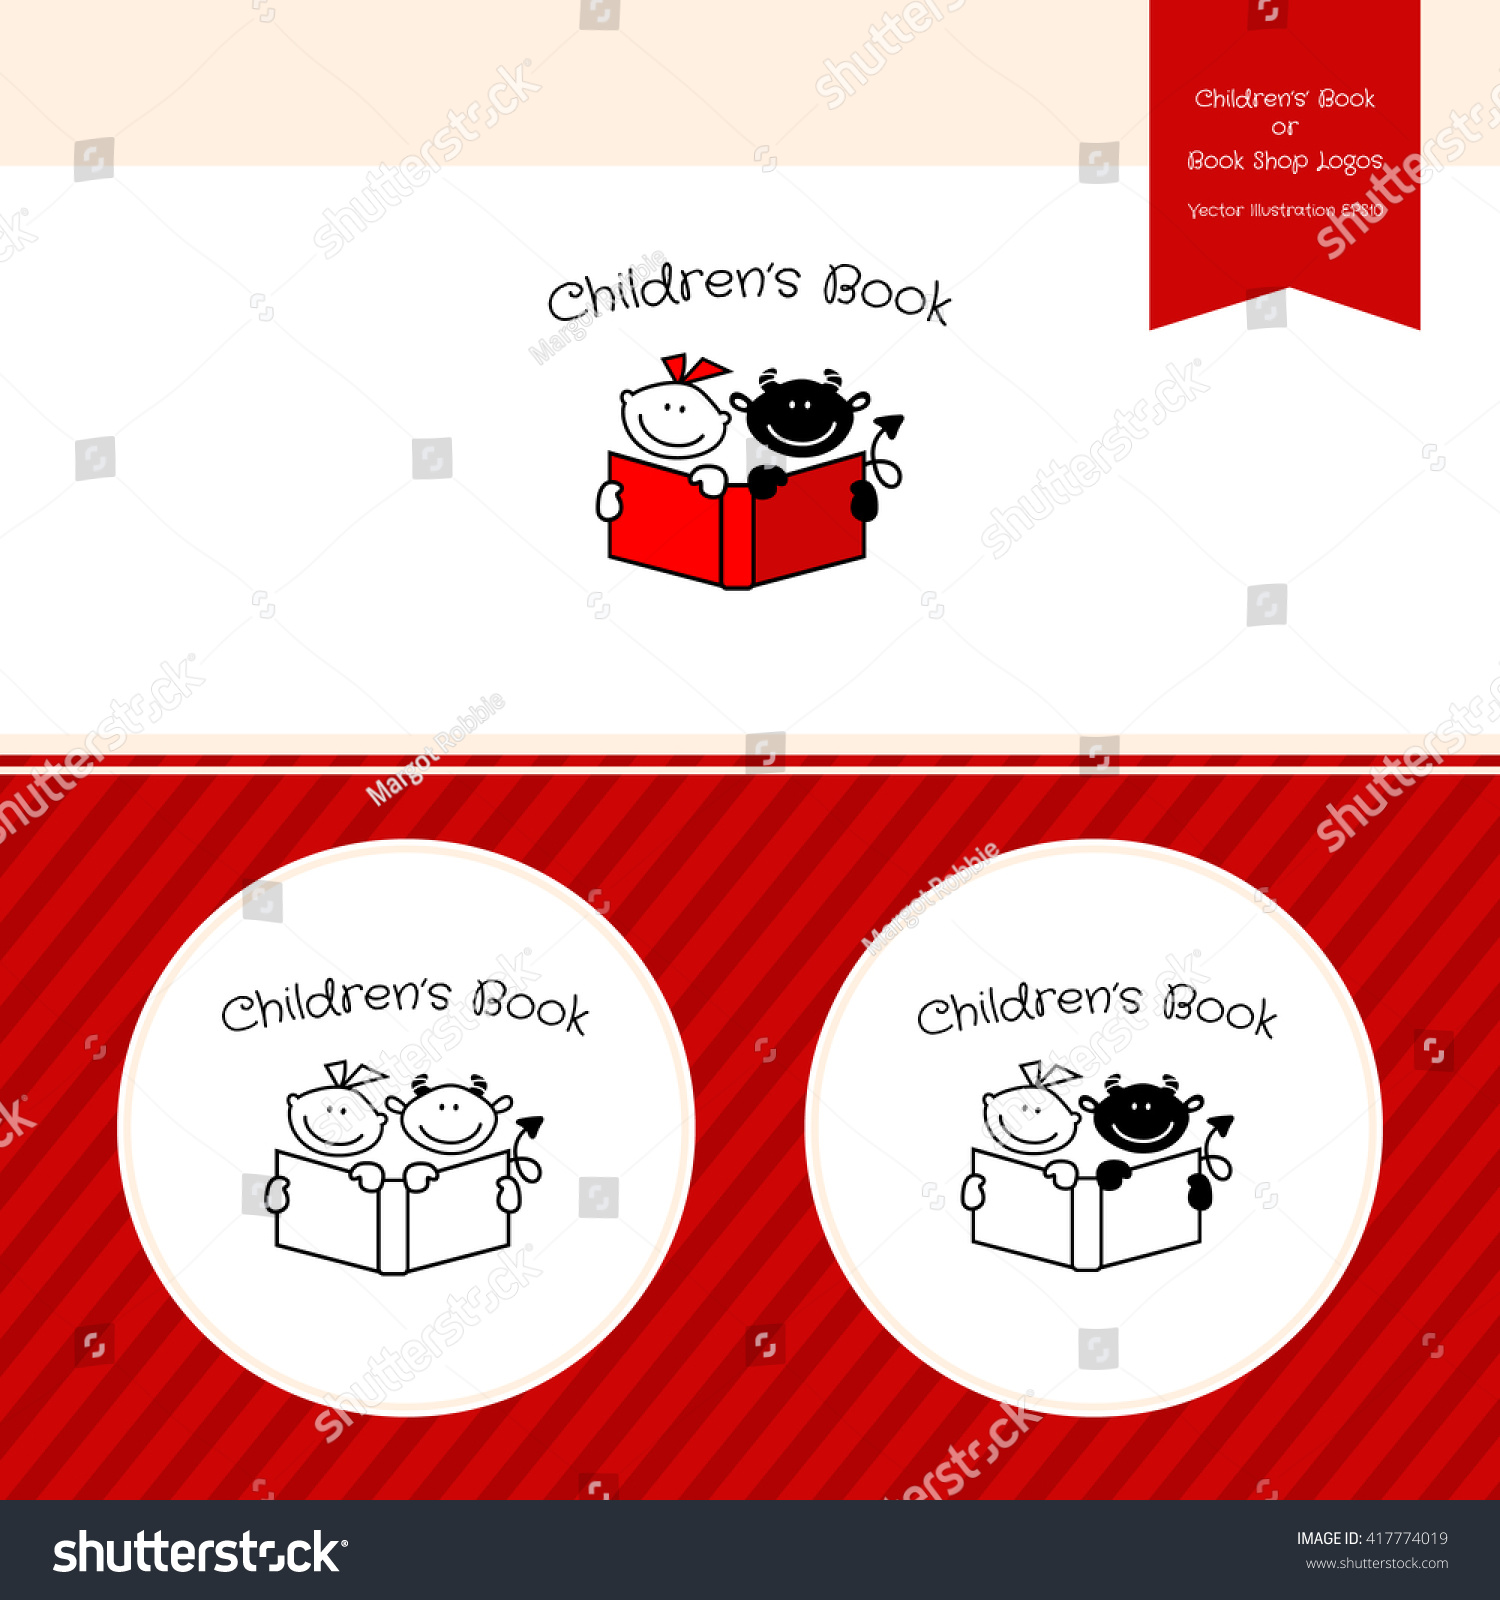 childrens book template